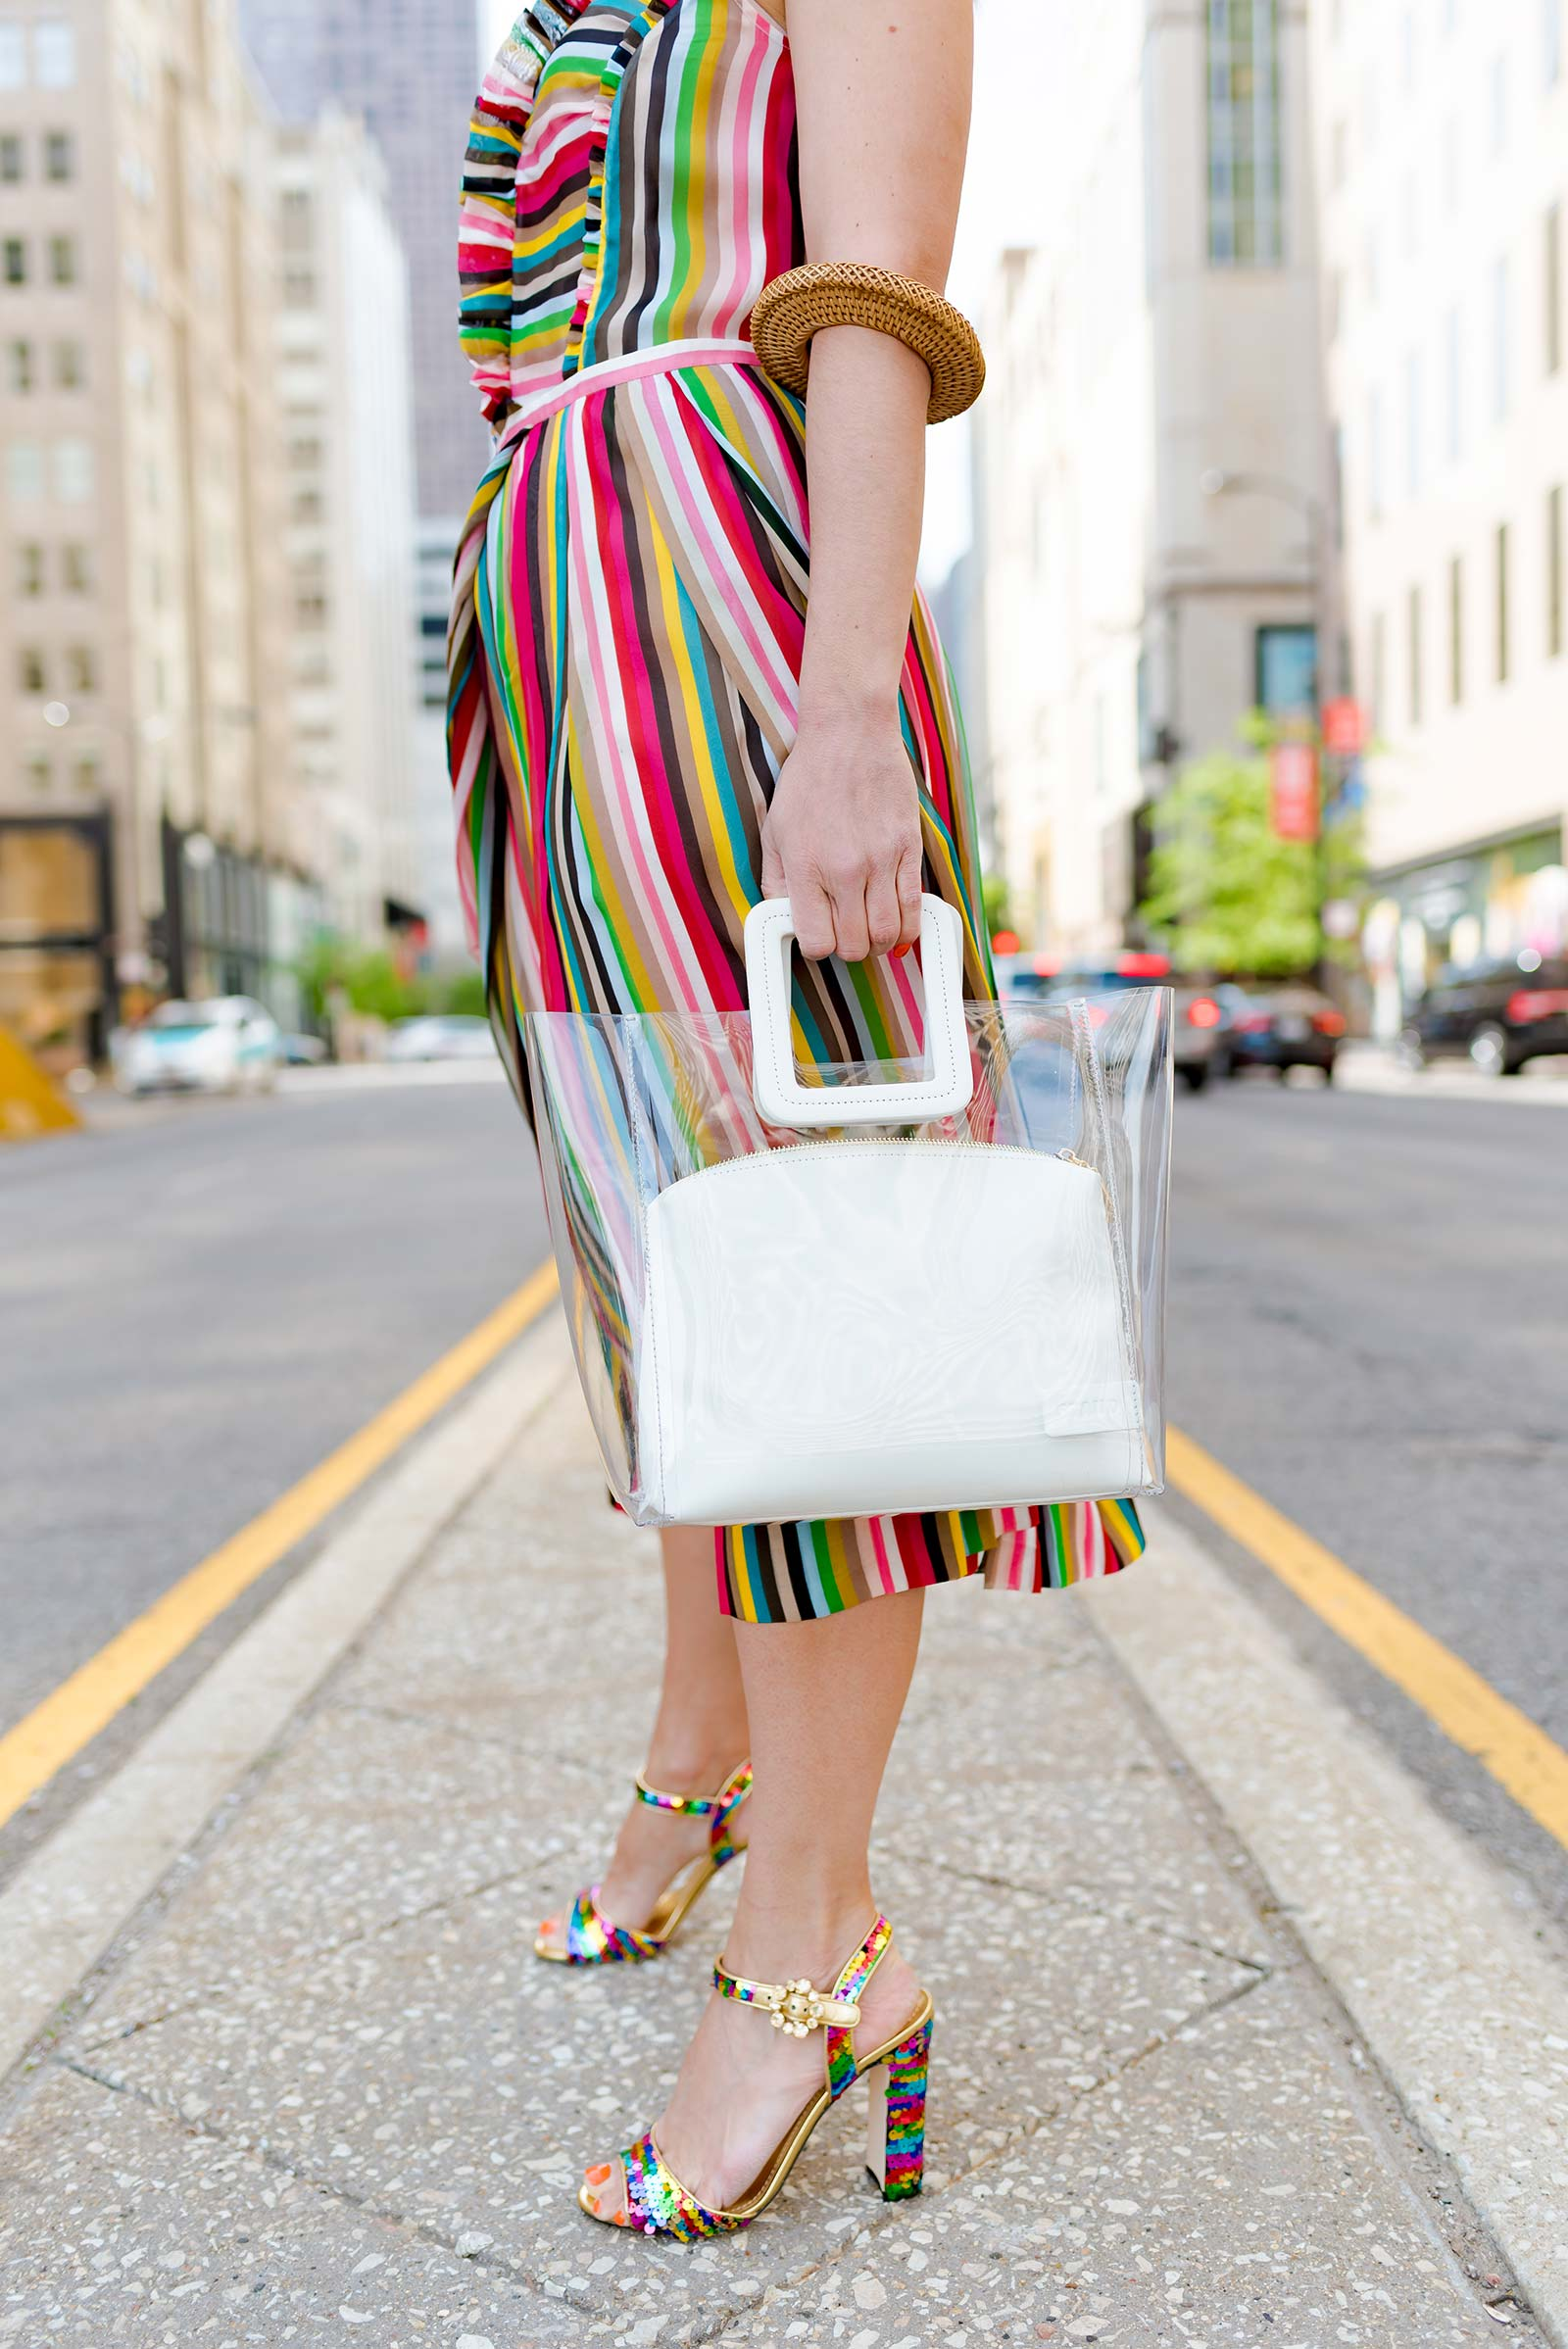 Anna Roufos Sosa of Noir Friday wearing a No. 21 dress, Dolce & Gabbana sandals and a Staud bag.